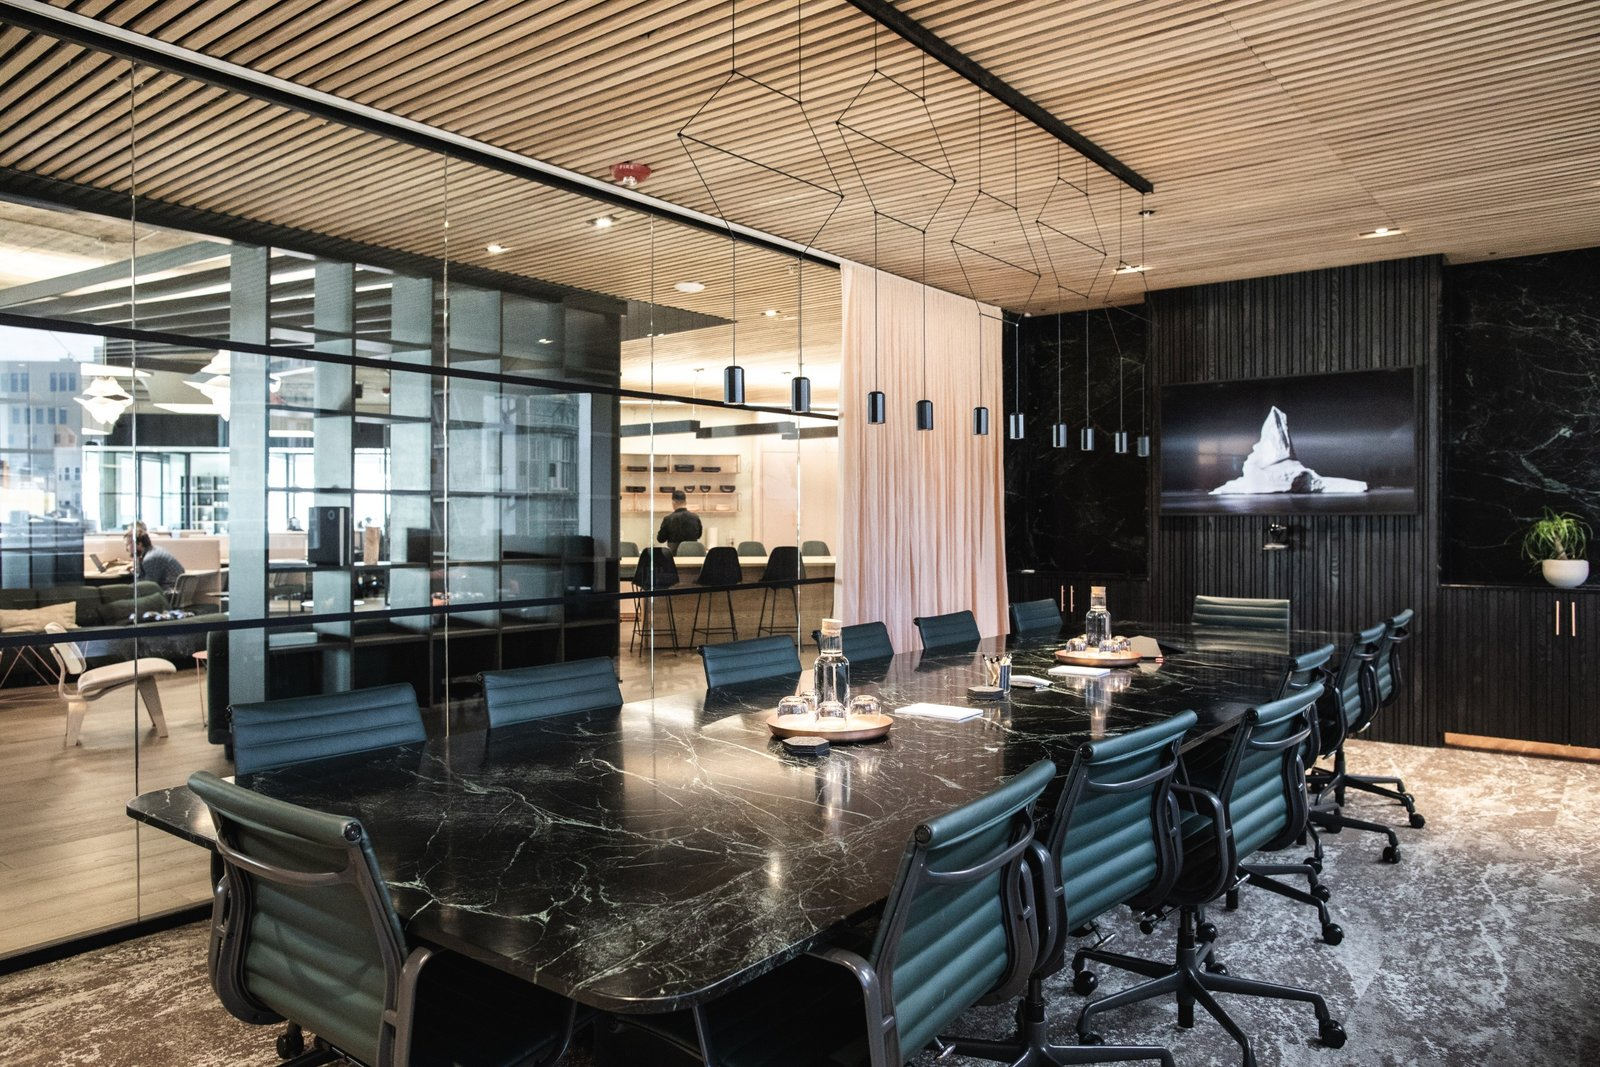 Custom-designed conference tables made of blackened ash and Verde Alpi green-and-black marble offer a dramatic space to brainstorm and collaborate. (Sothear Nuon)